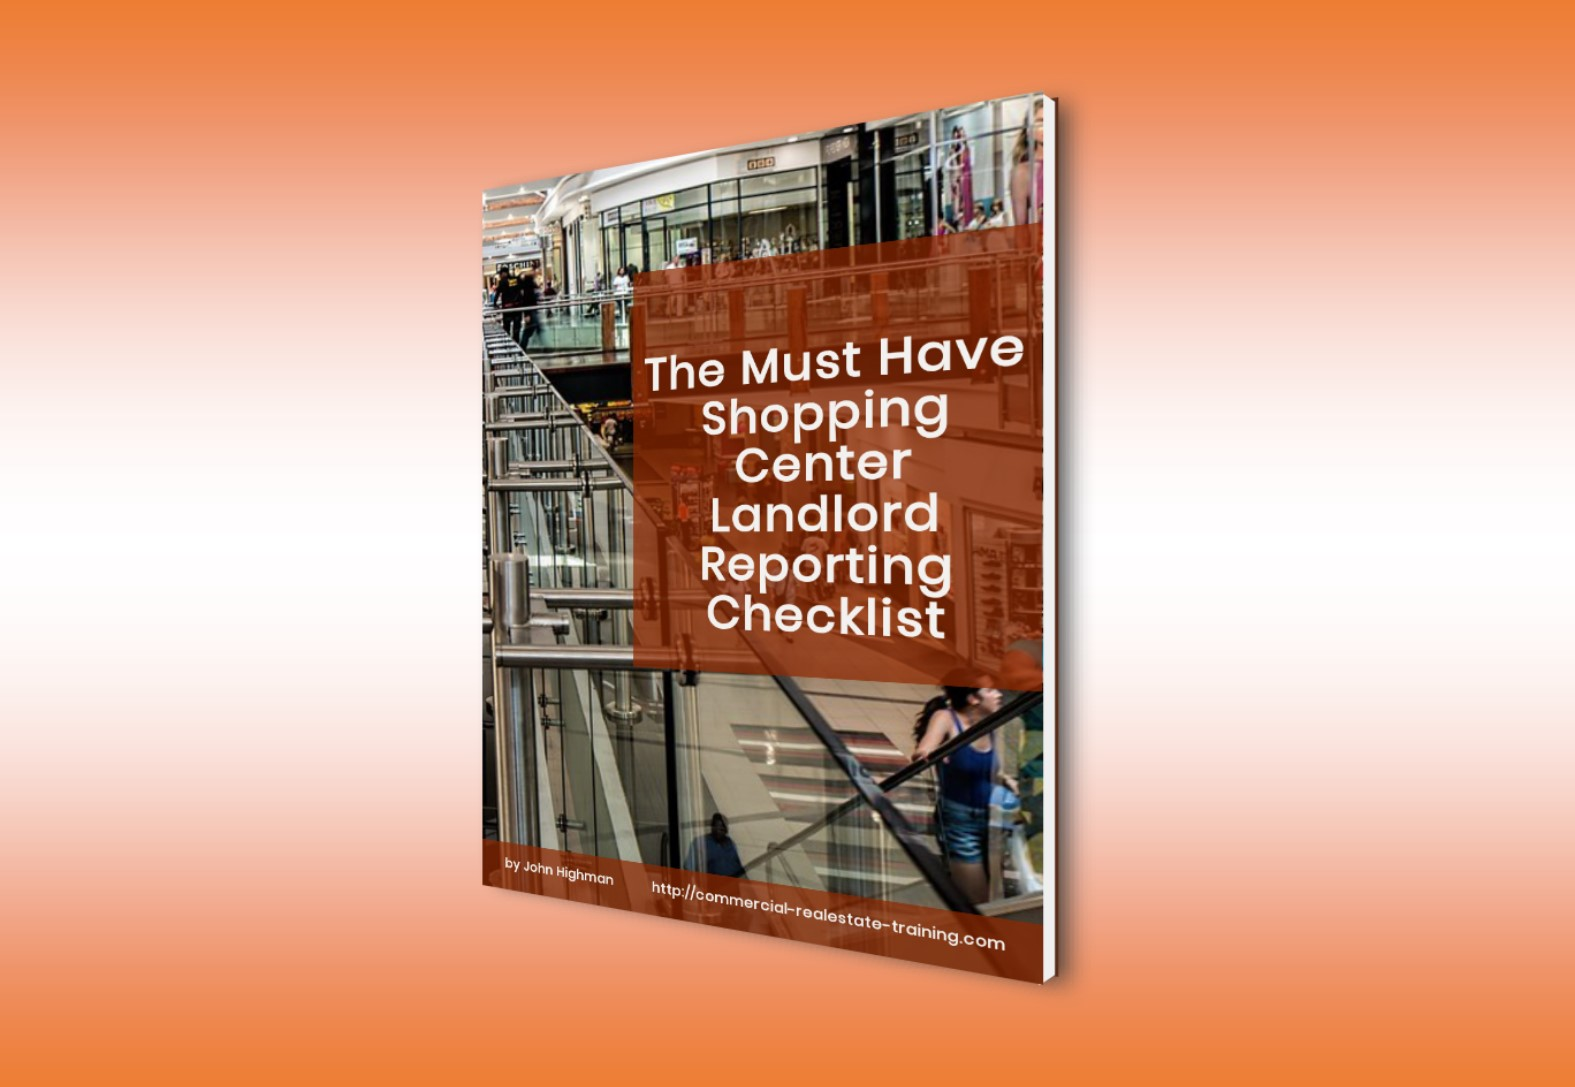 The Must Have Shopping Center Landlord Reporting Checklist